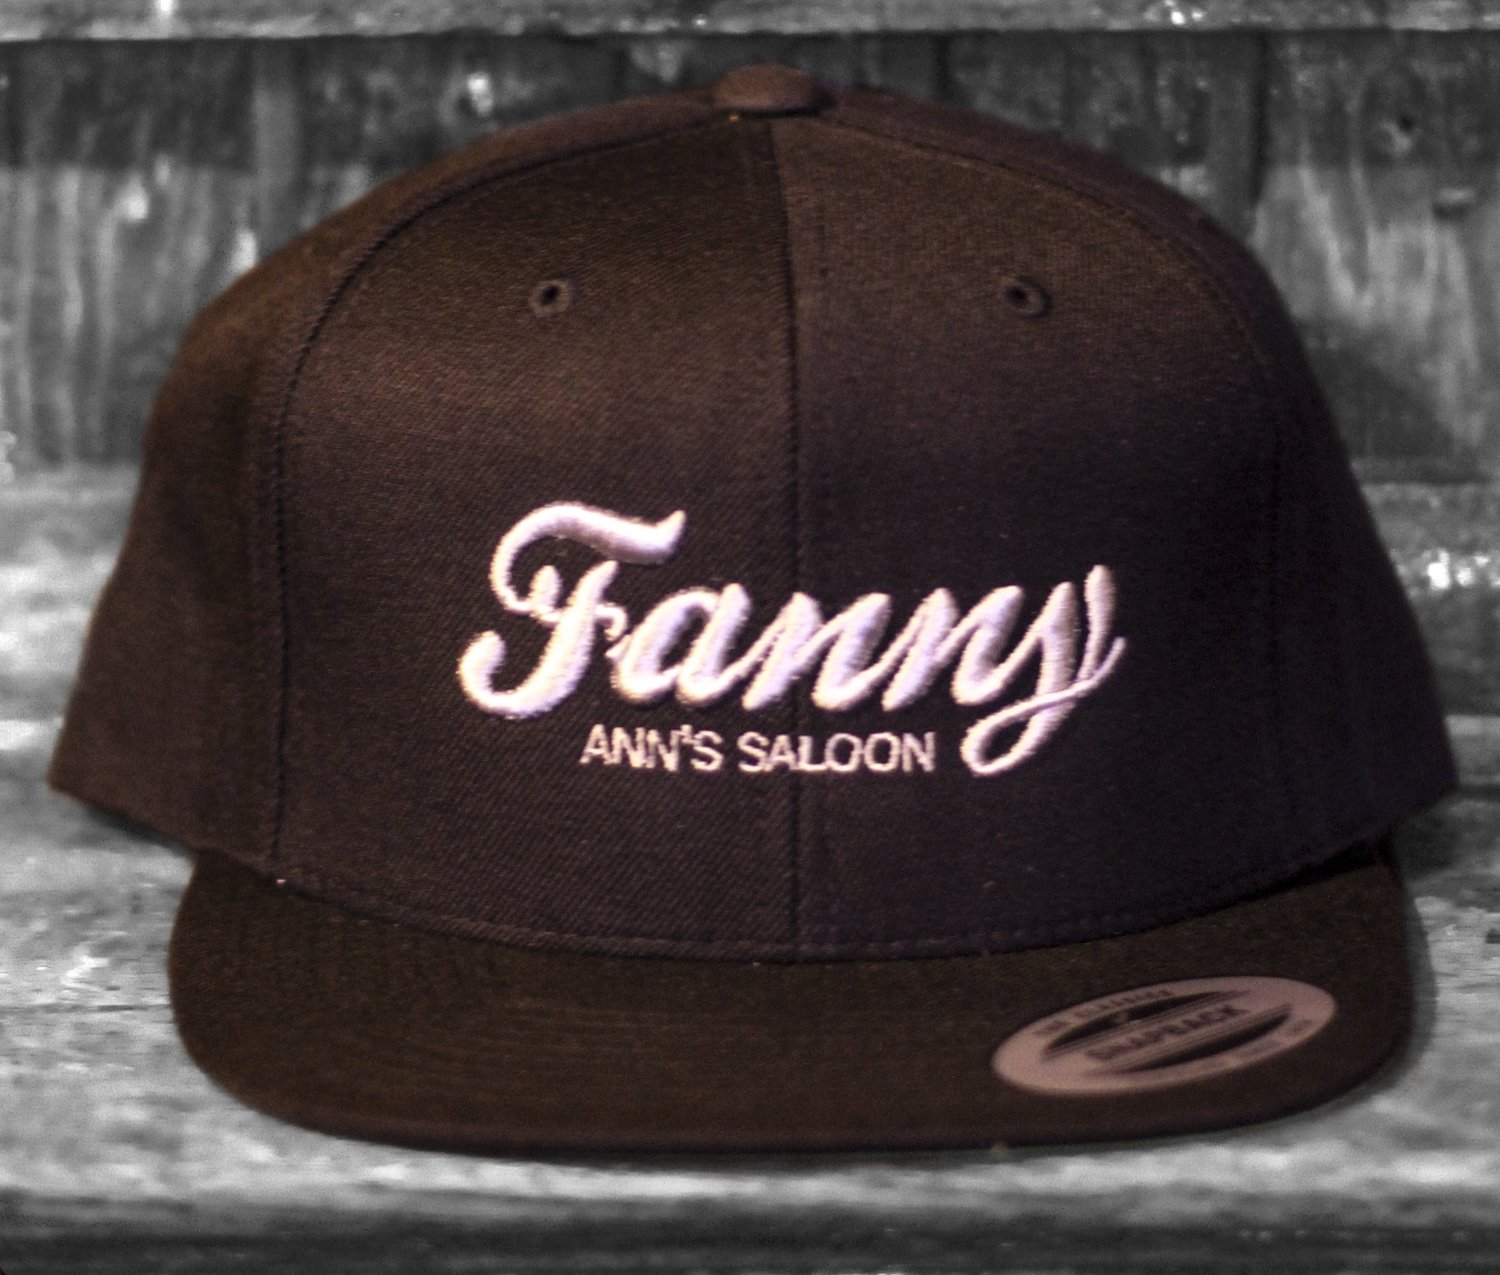 Silver and Black Embroidered Hat